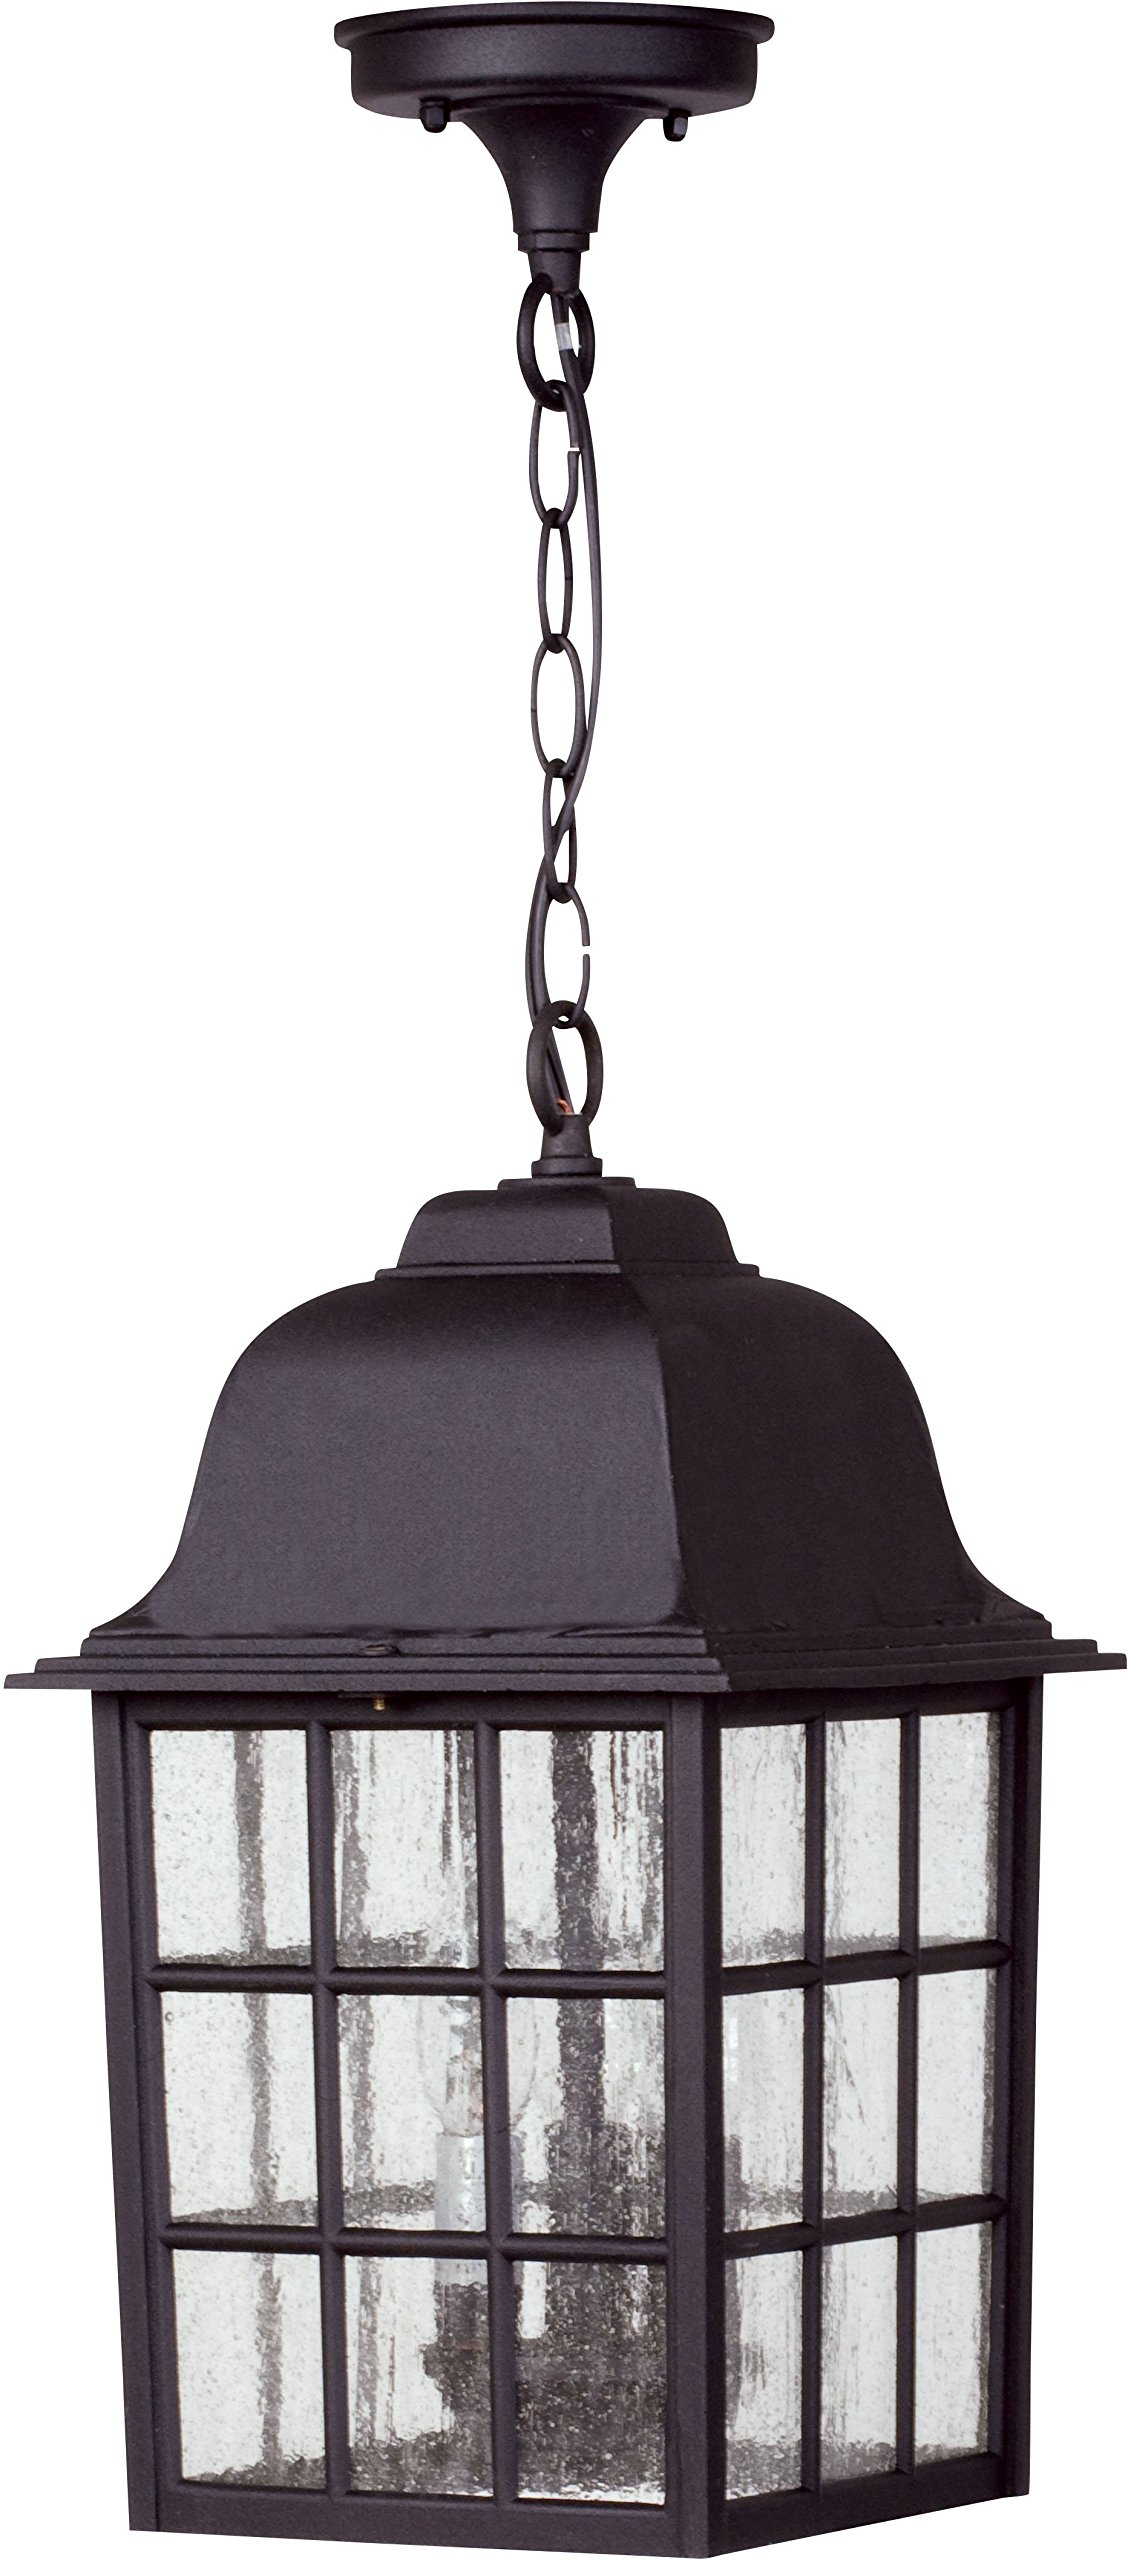 Craftmade Z571-05 Hanging Lanterns with Seeded Glass Shades, Black